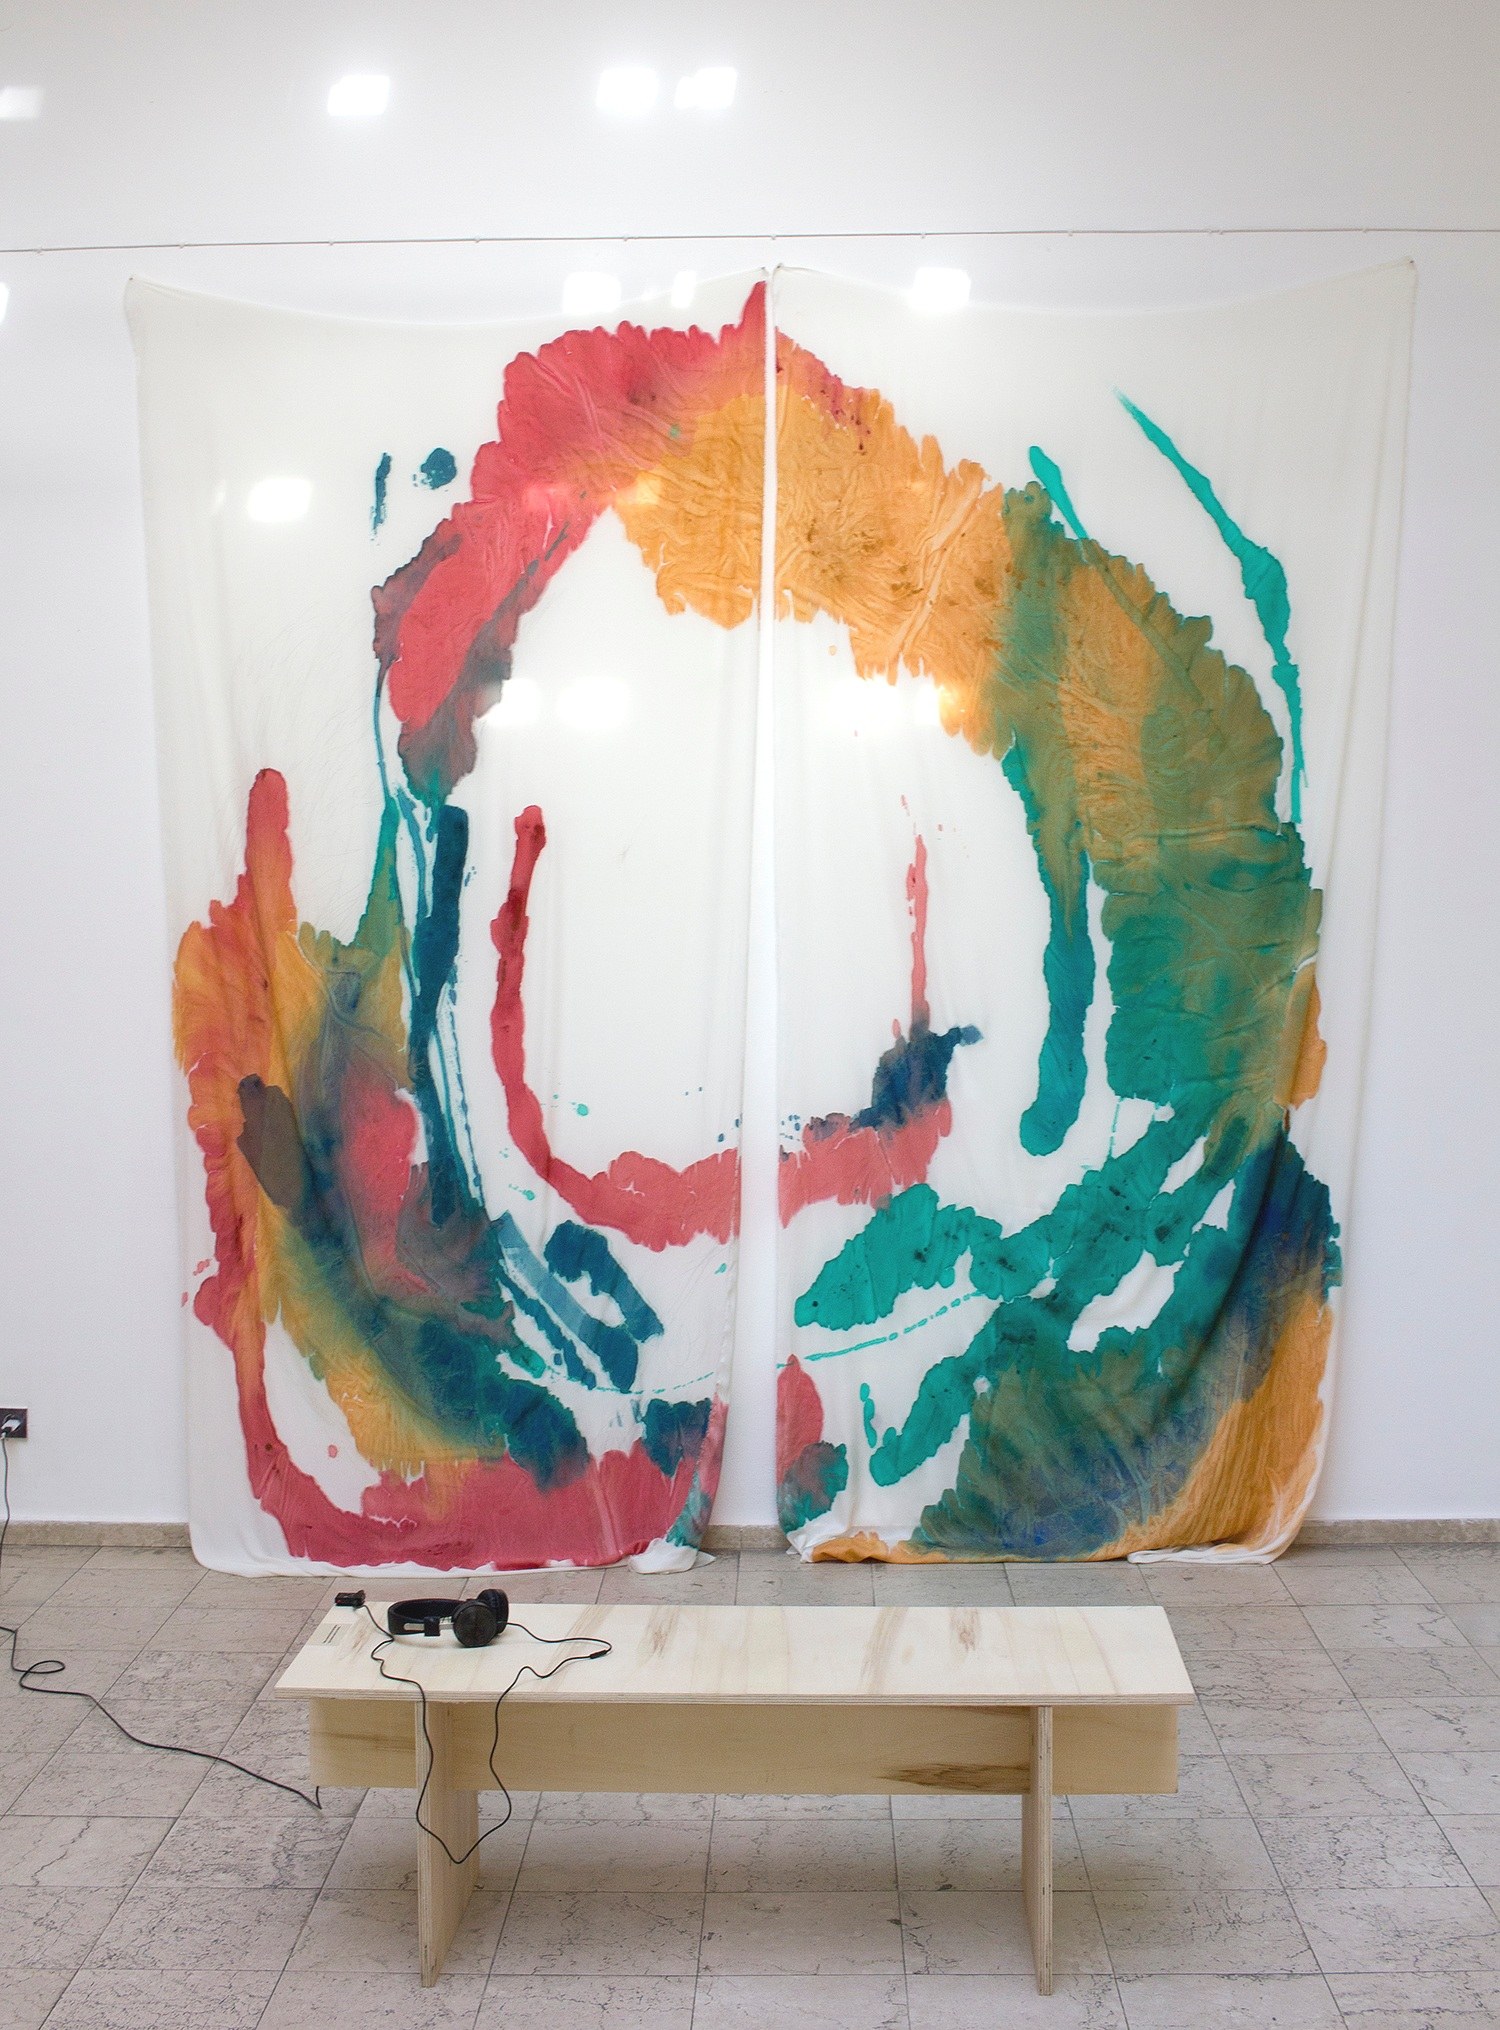 acrylic on unprimed sheer textile, 325x290cm (each panel 325x145cm); audio 05:59 min